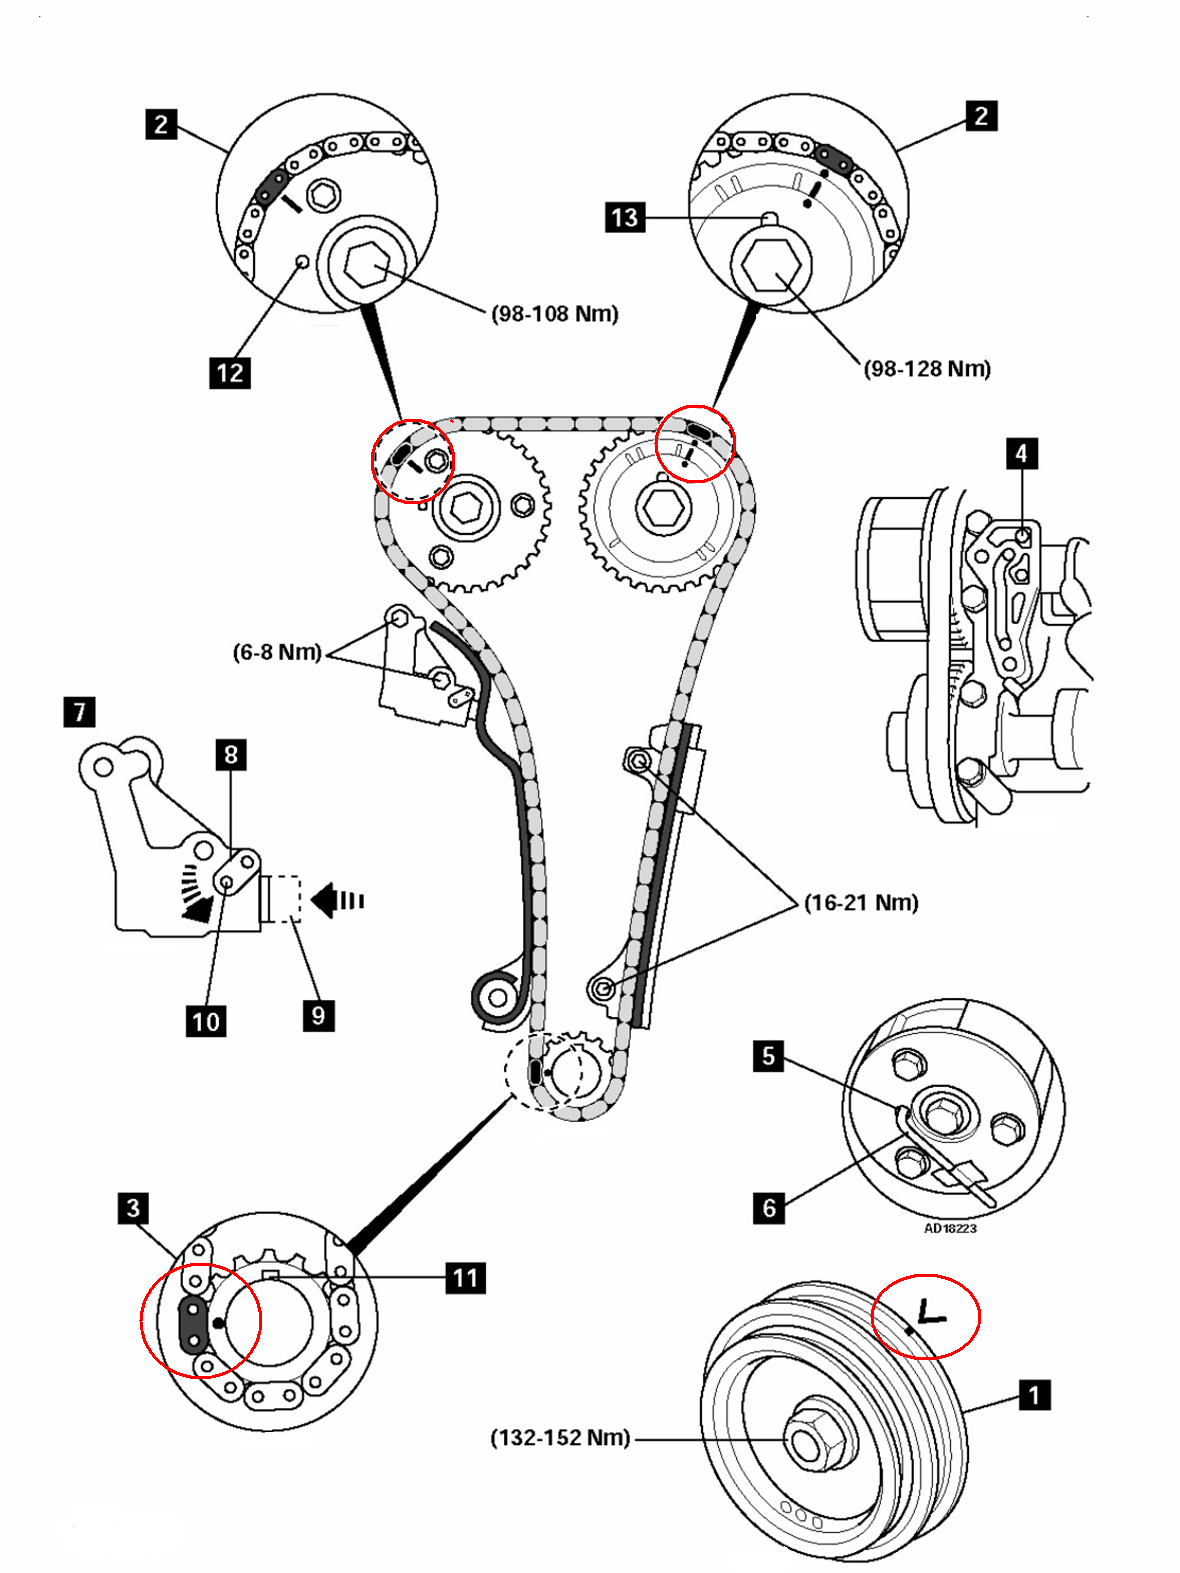 P 0996b43f80379a71 moreover 4cn6r Removed Cylinder Head 2001 Nissan Sentra 1 8 additionally Index together with Index also Oxygen sensor location. on 2000 nissan sentra engine diagram